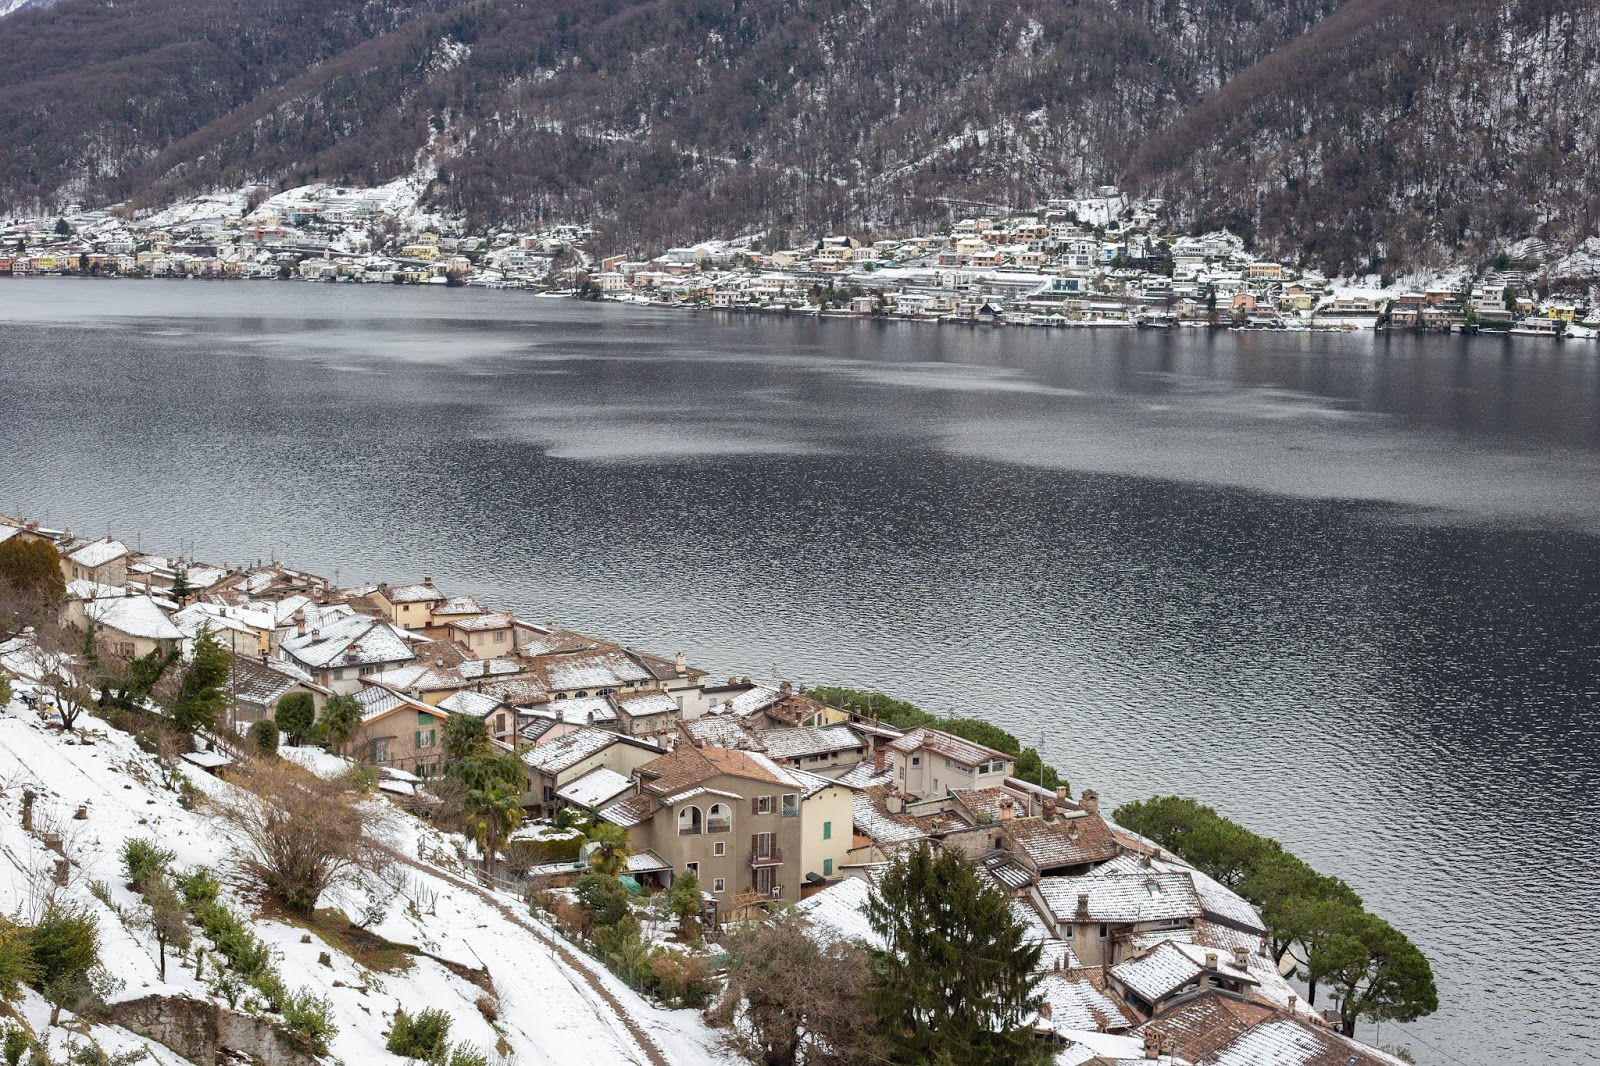 https://www.notebook.ldmailys.com/2019/02/weekend-lugano.html